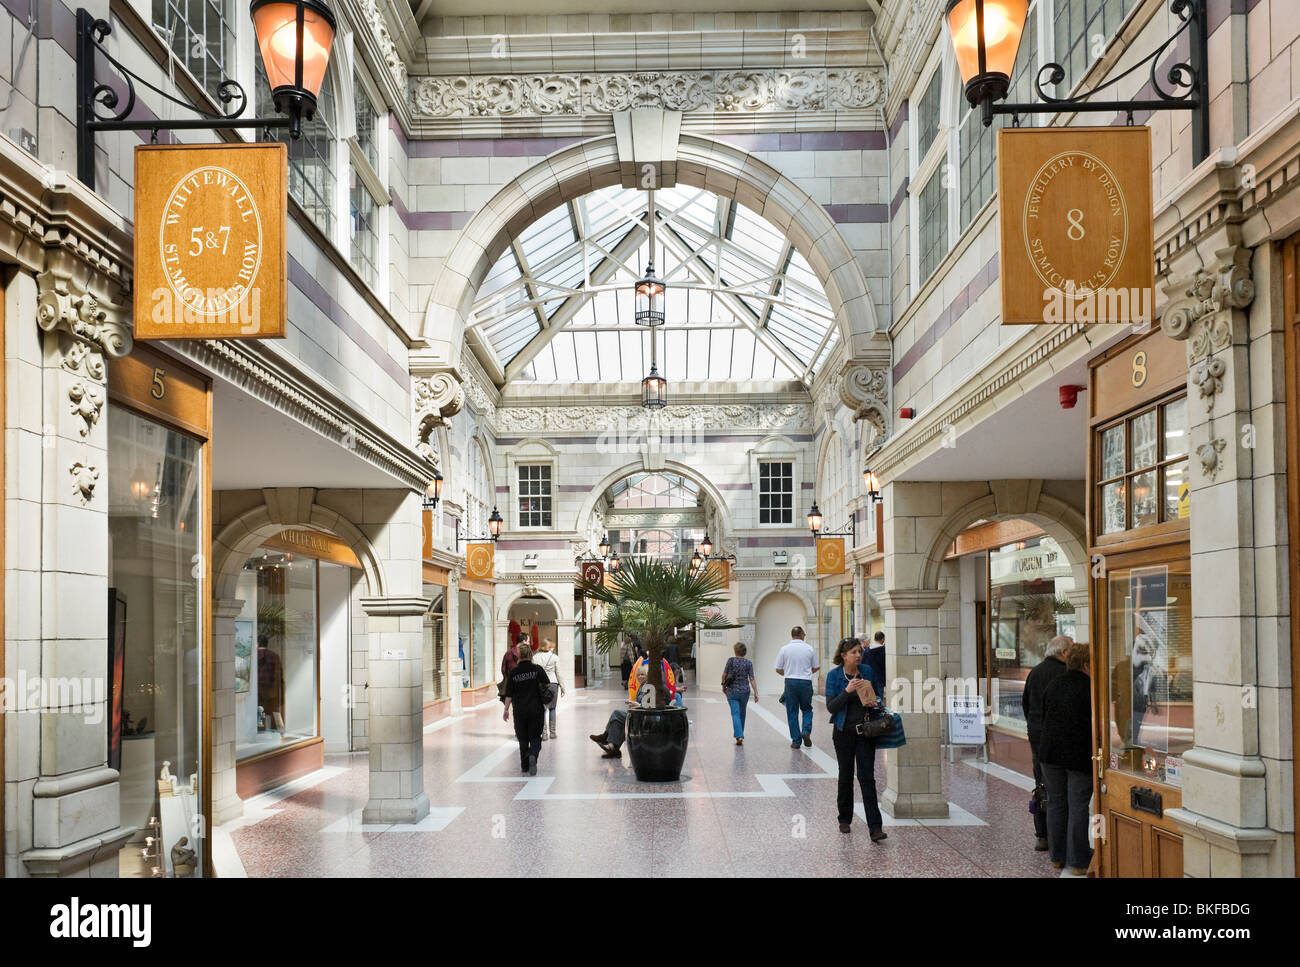 Shops on St Michael's Row in the Grosvenor Arcade Shopping Centre, Chester, Cheshire, England, UK - Stock Image